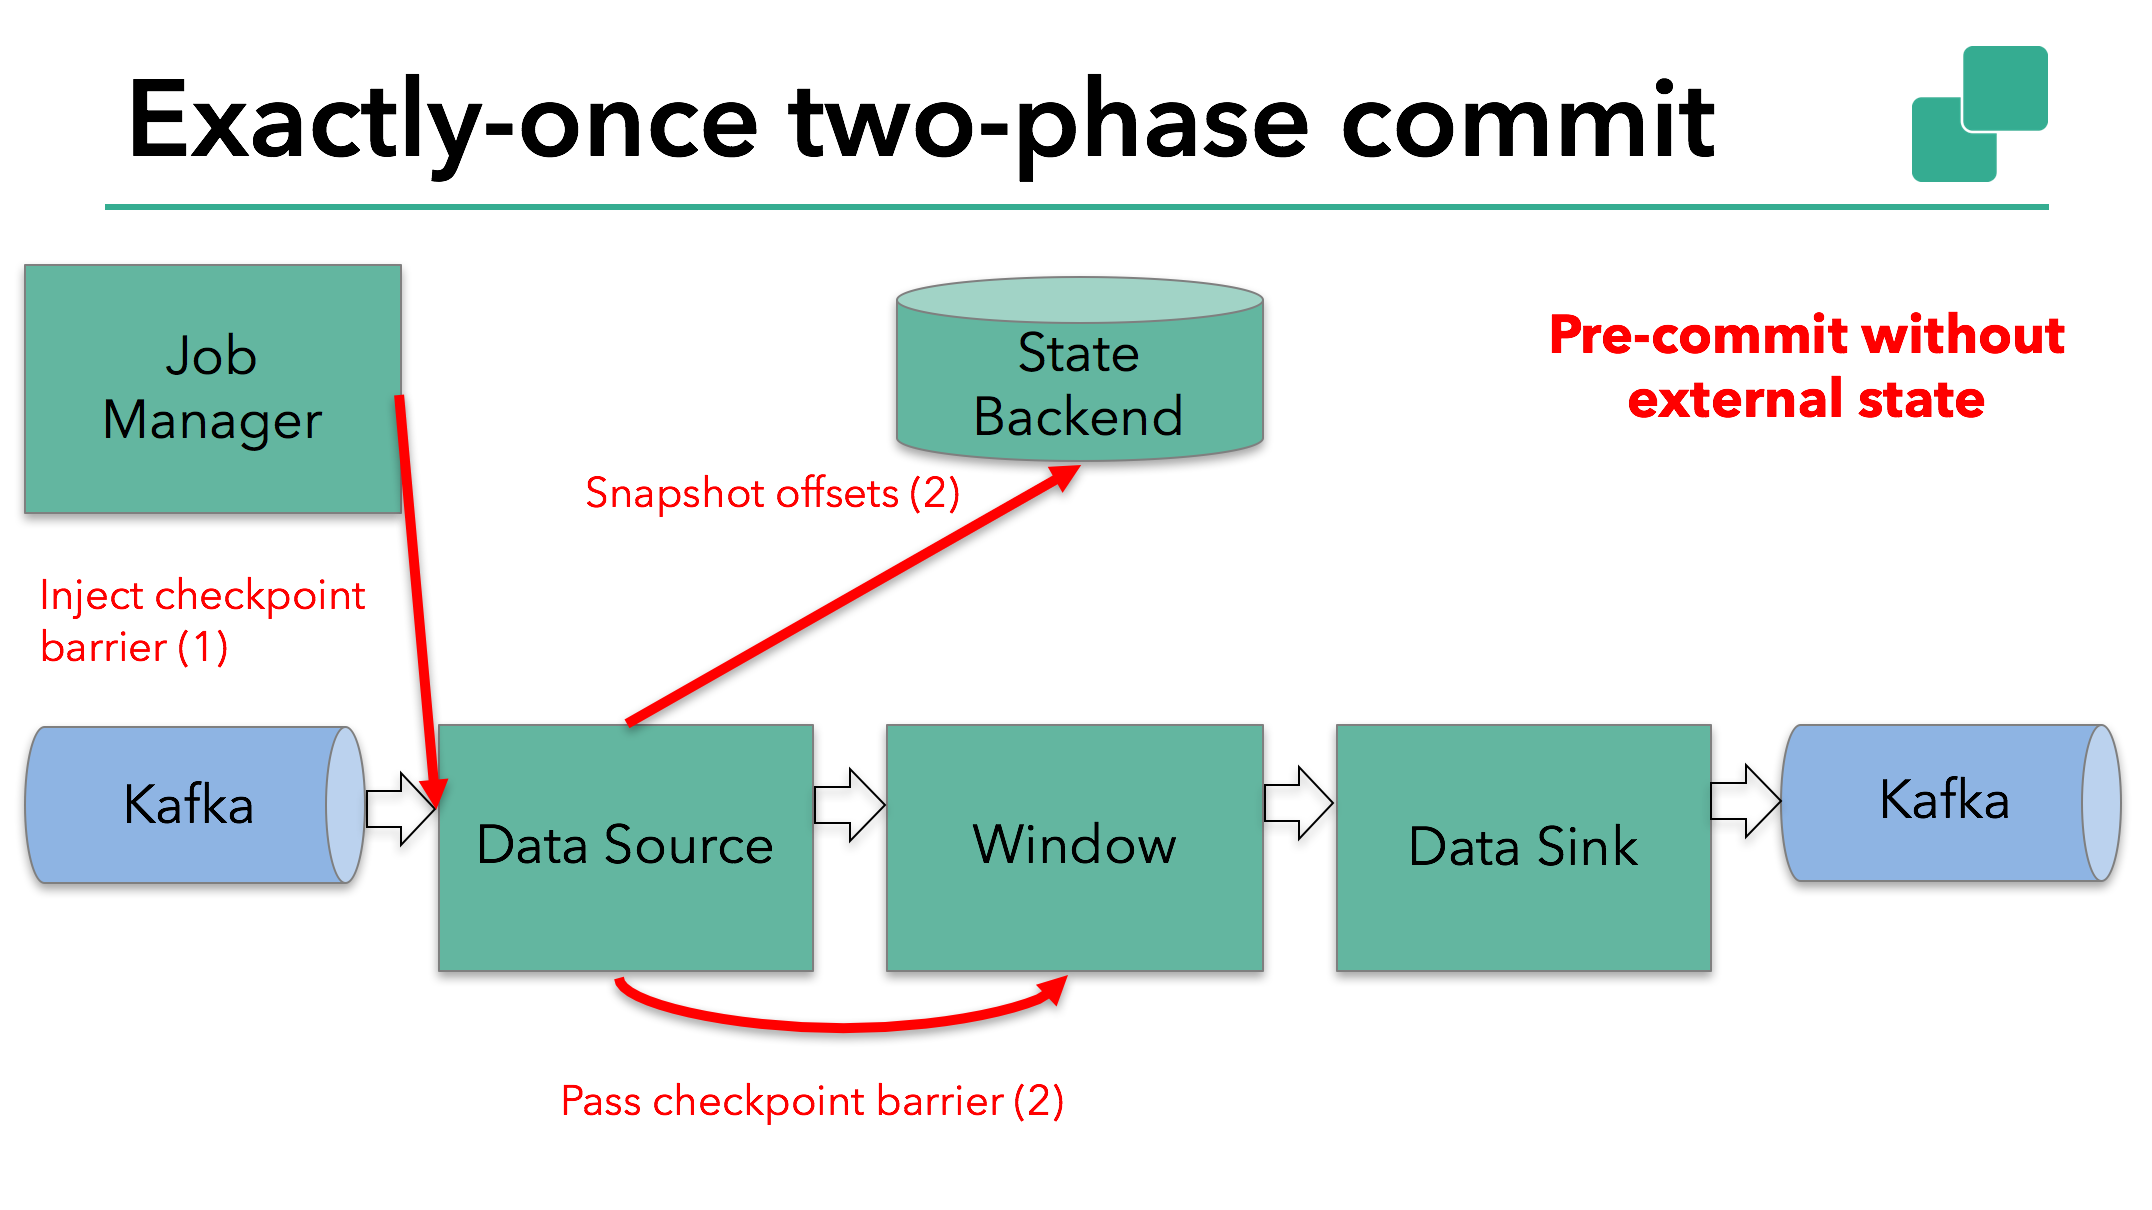 Sample Flink application carries out pre-commit without external state